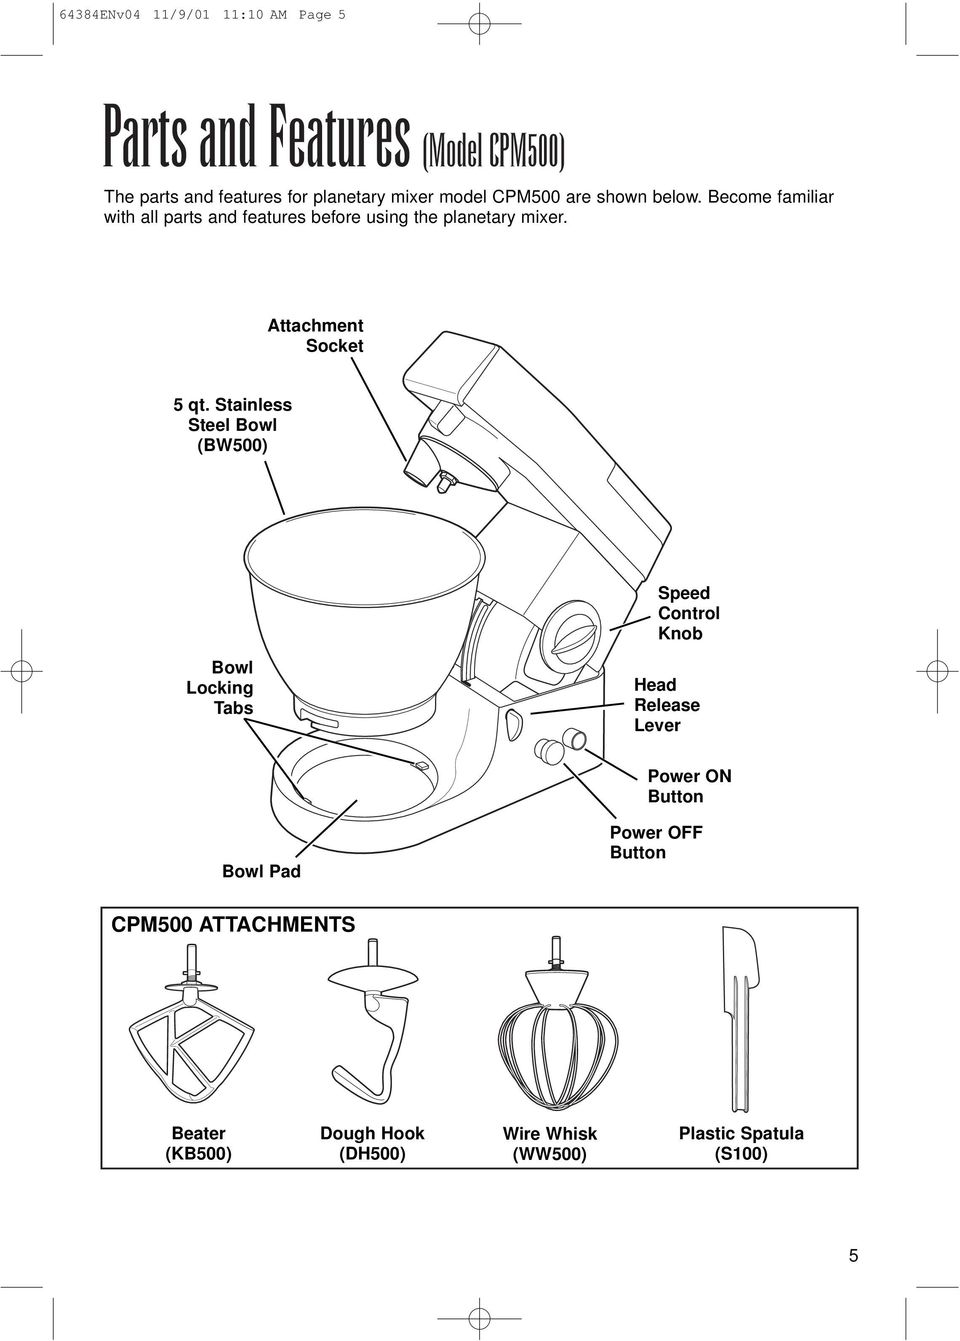 Attachment Socket 5 qt.